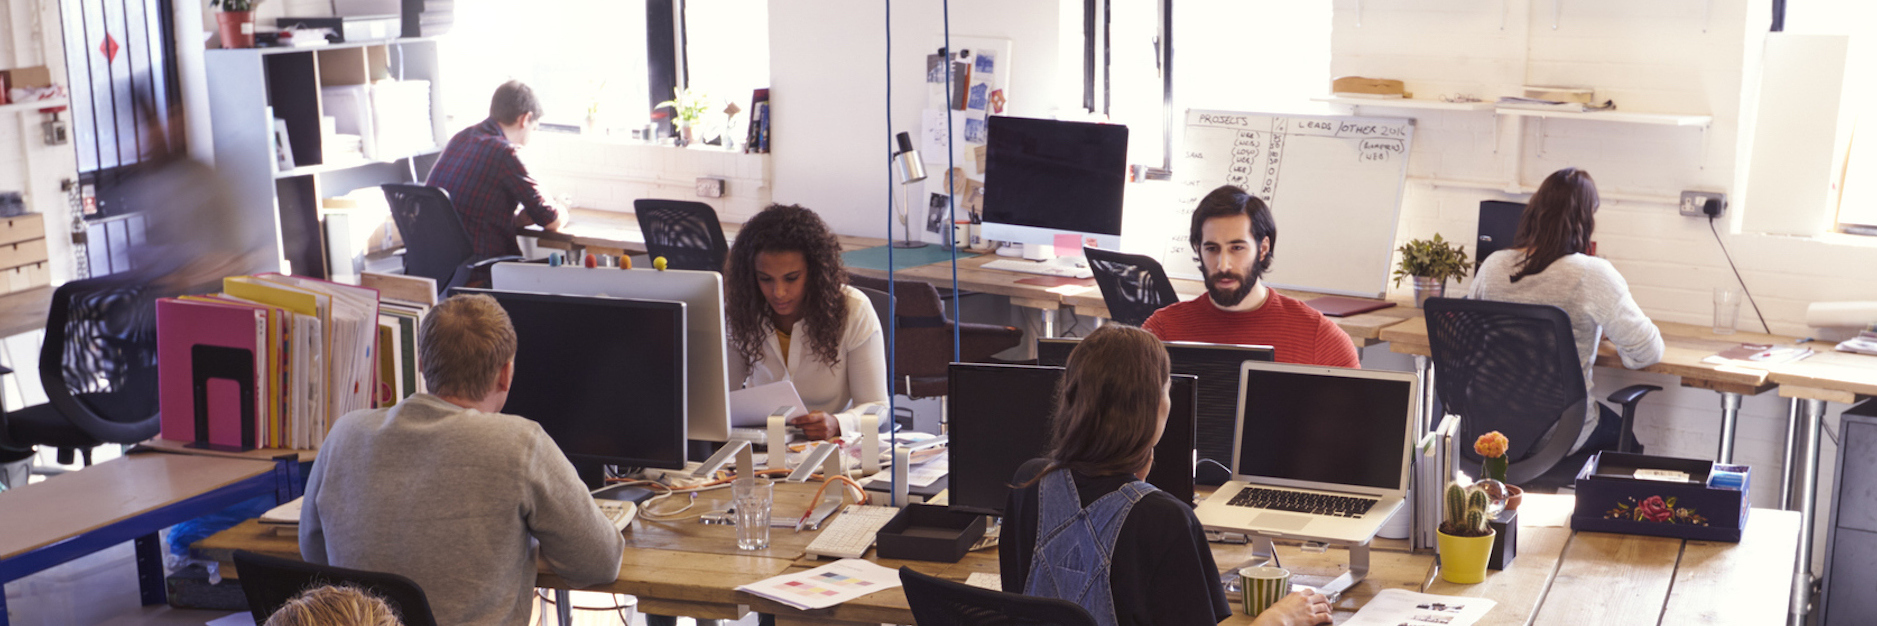 Employees working at desks in office